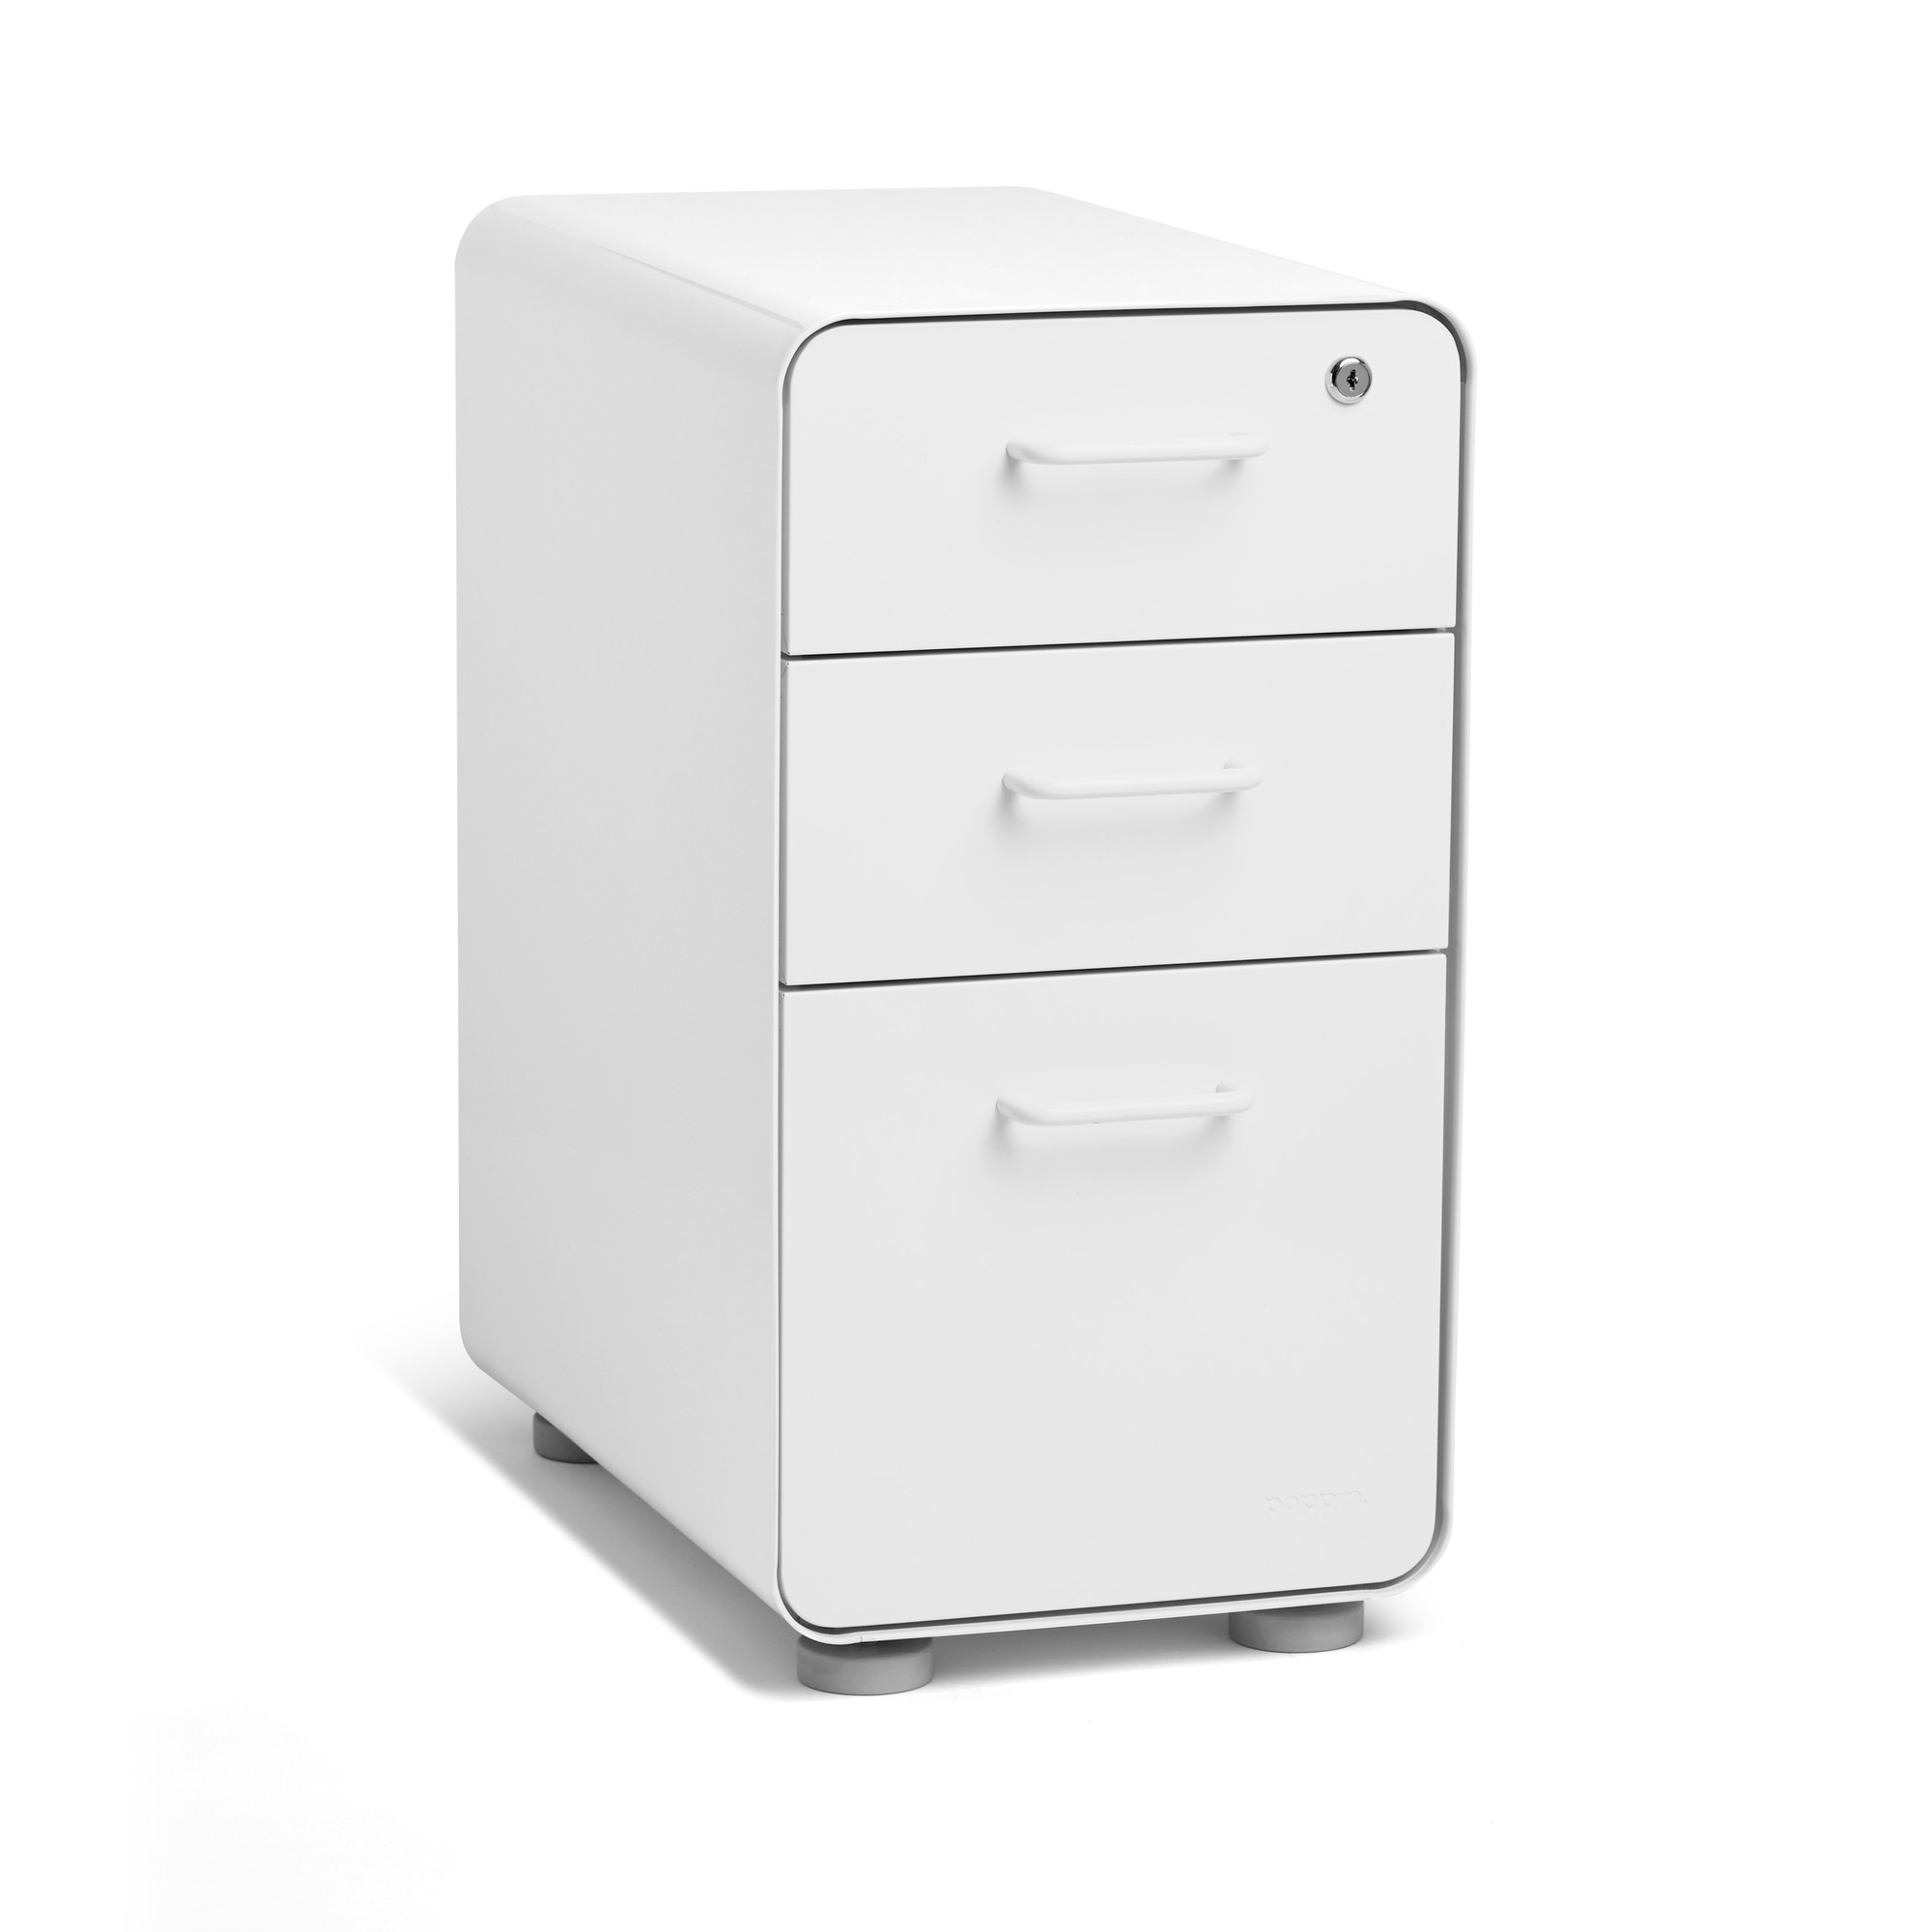 Merveilleux White Slim Stow 3 Drawer File Cabinet,White,hi Res